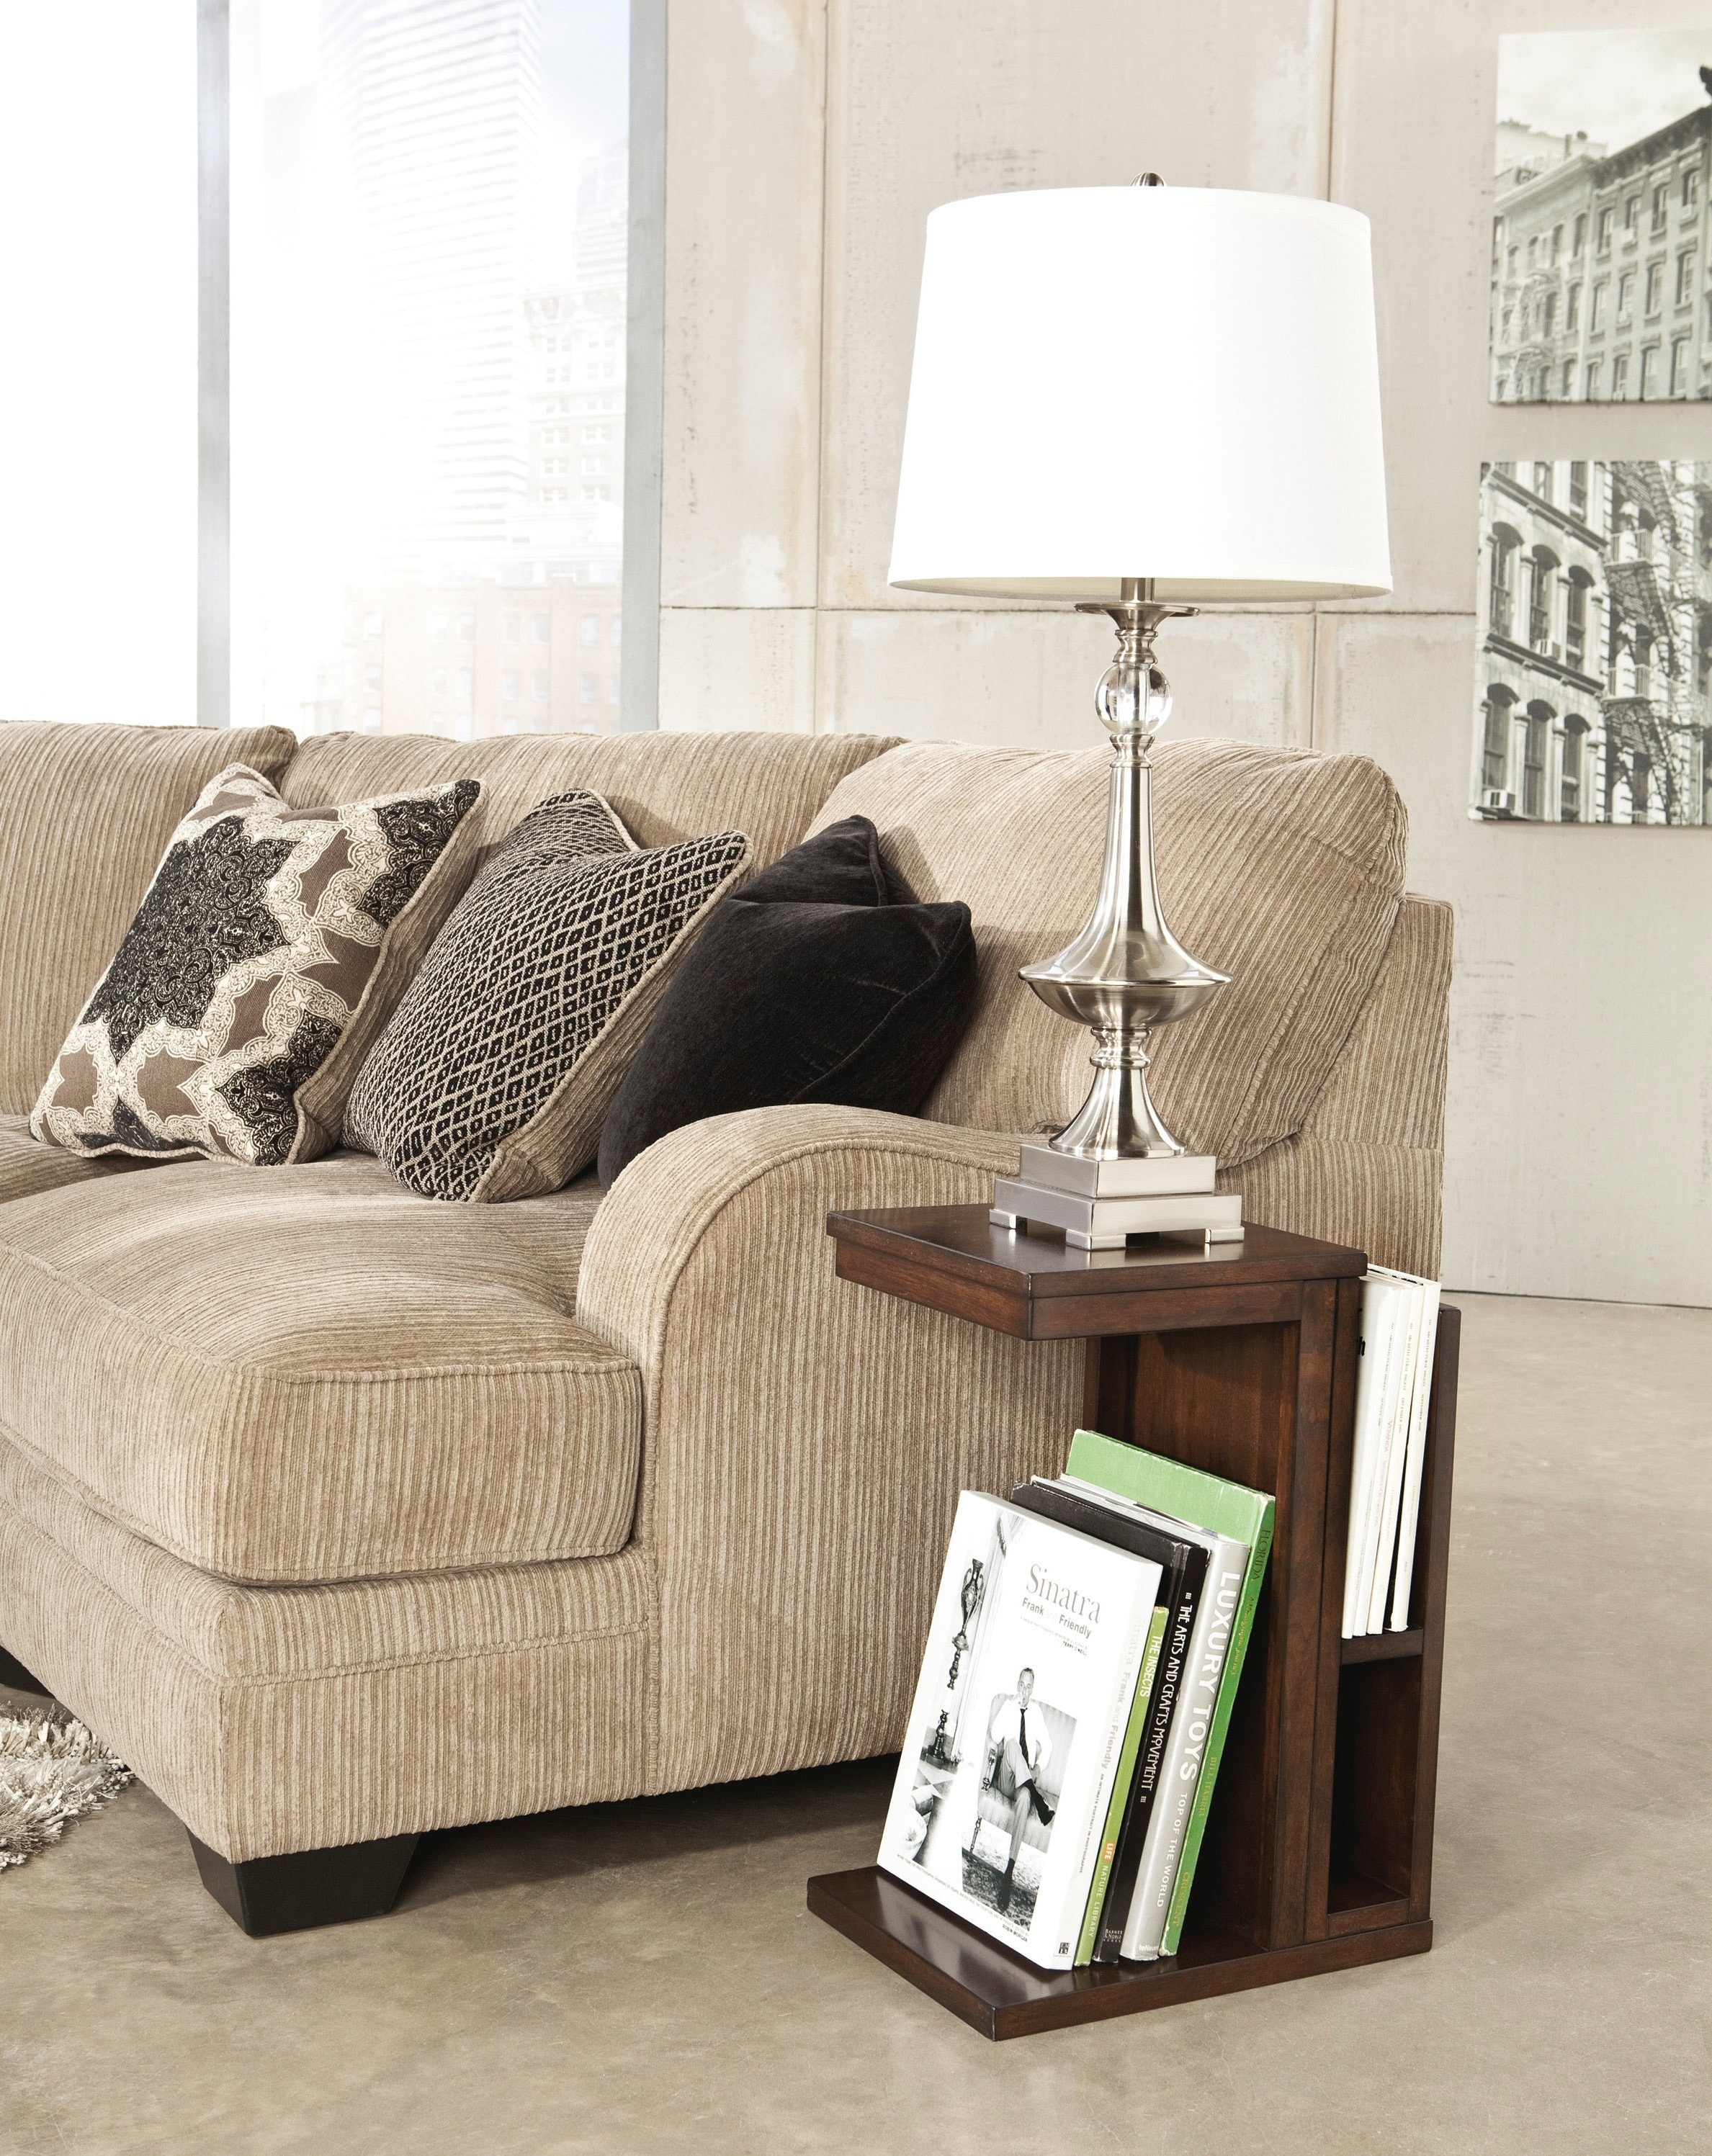 End Tables : Living Room Modern End Table Lamp Design With White For Well Liked Living Room End Table Lamps (View 10 of 15)